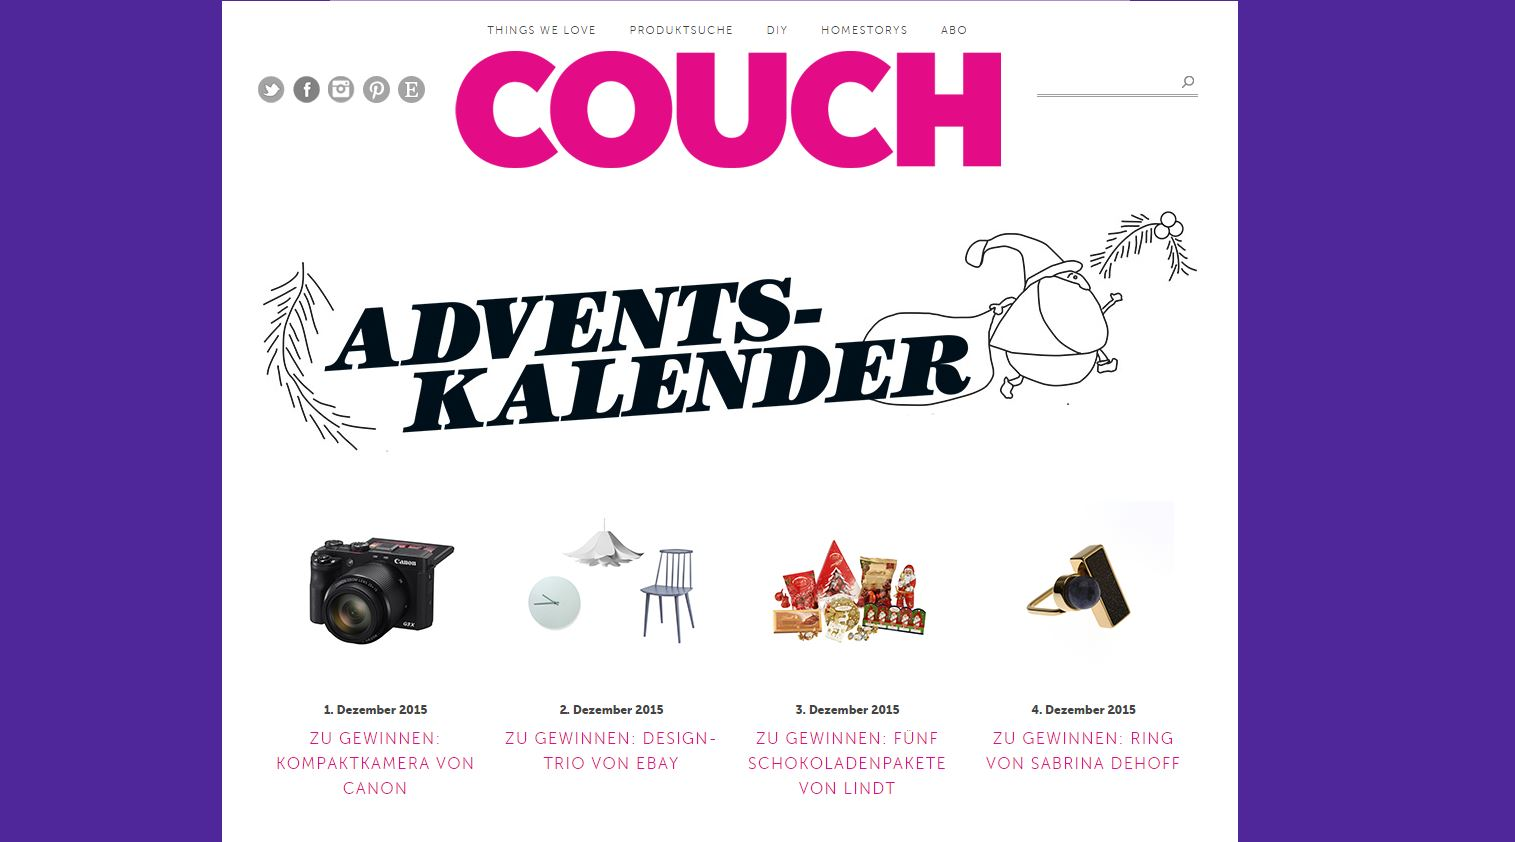 couch online adventskalender 2015. Black Bedroom Furniture Sets. Home Design Ideas